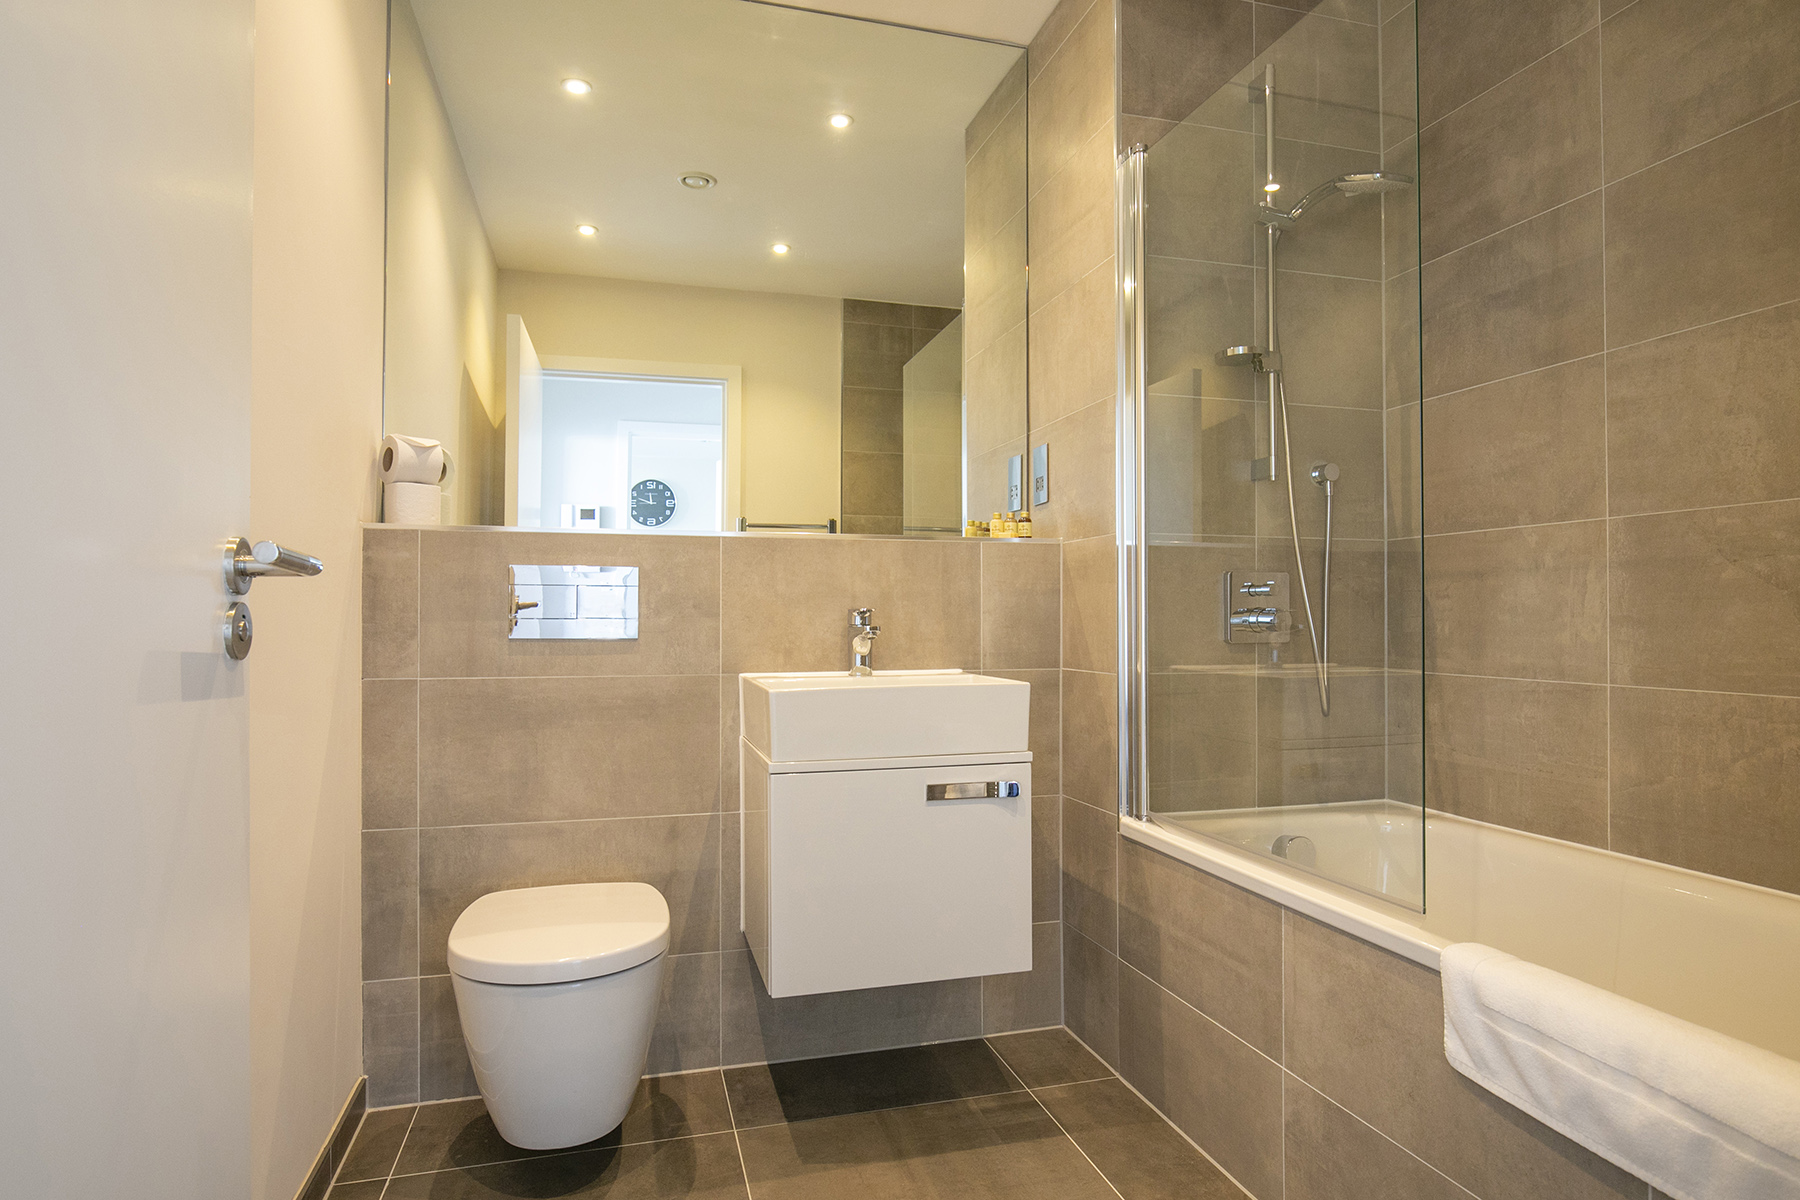 Bathroom at The View Apartments, Centre, Sunbury - Citybase Apartments